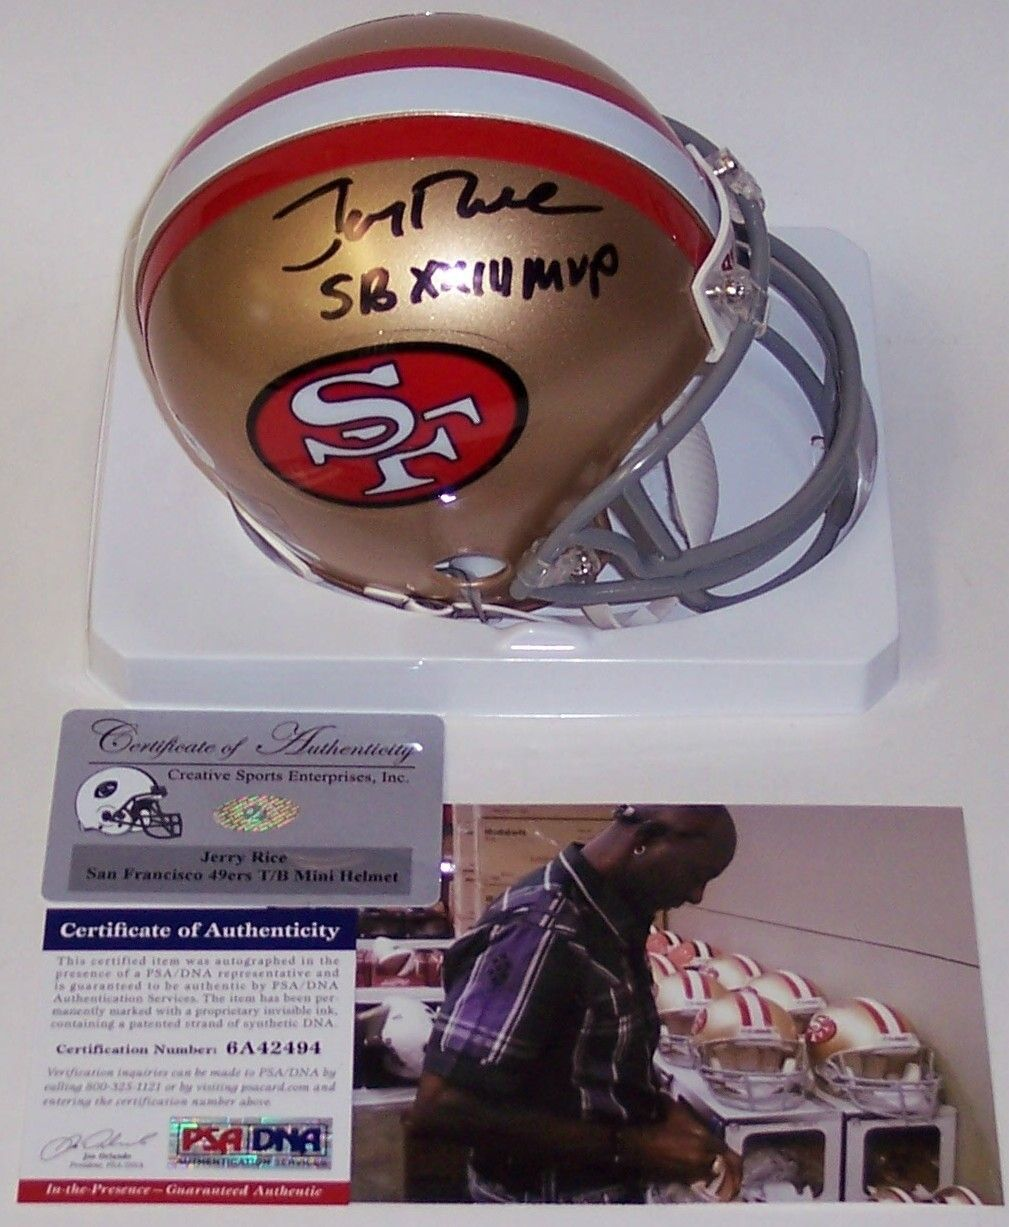 a848abc51 Jerry Rice Autographed Hand Signed 49ers Mini Helmet - PSA DNA. Dna